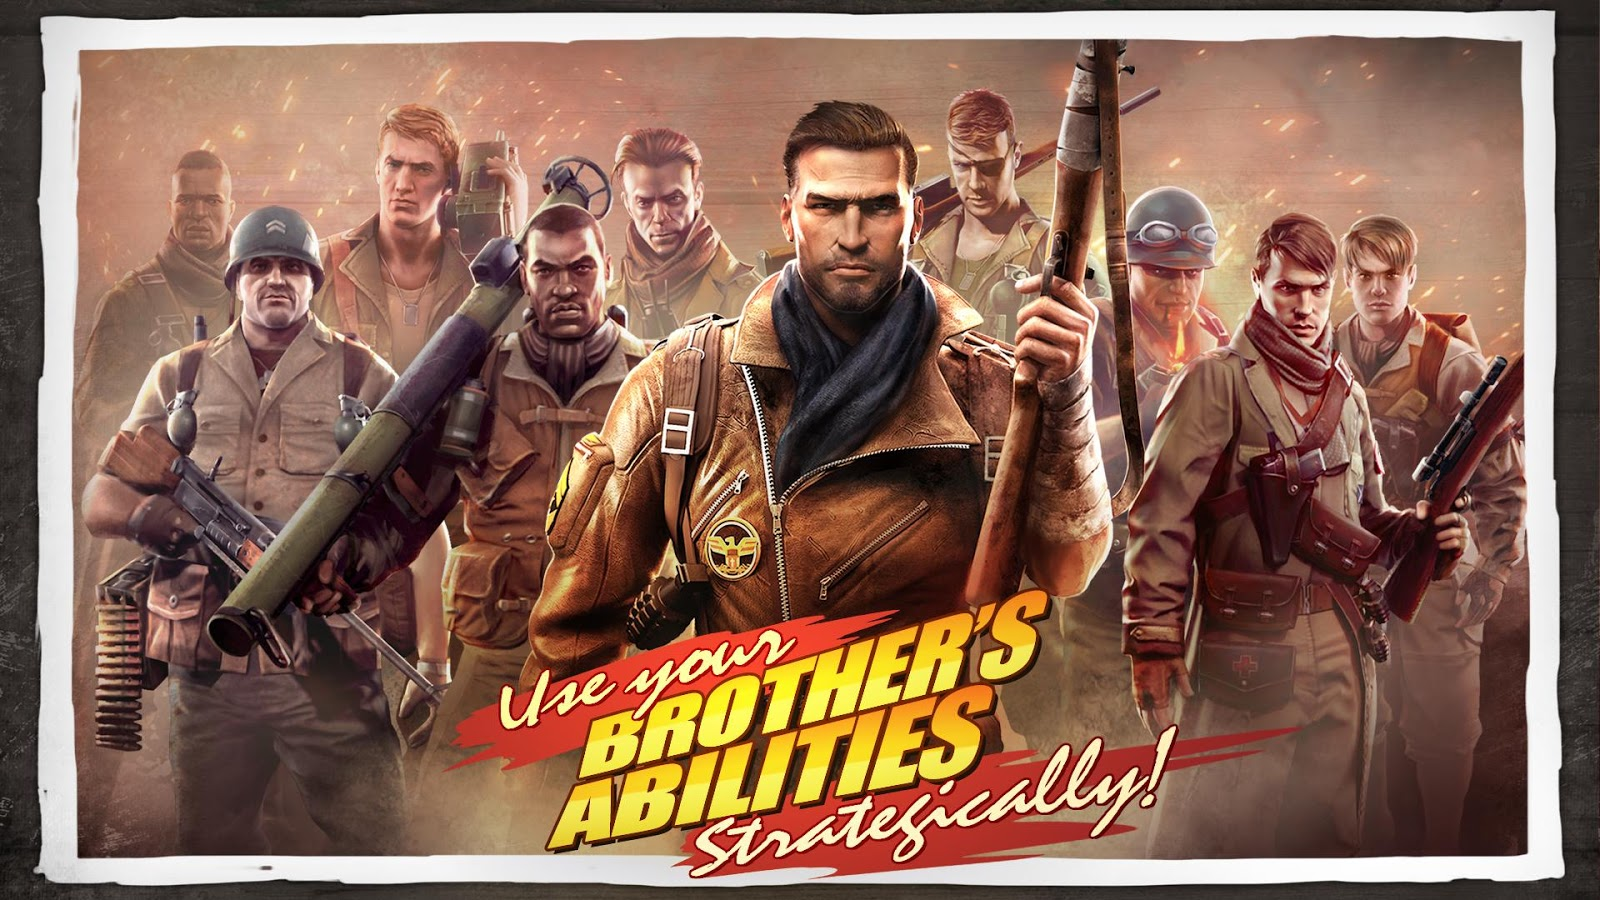 Brothers In Arms 3 Medals Energy and Dog Tags Generator